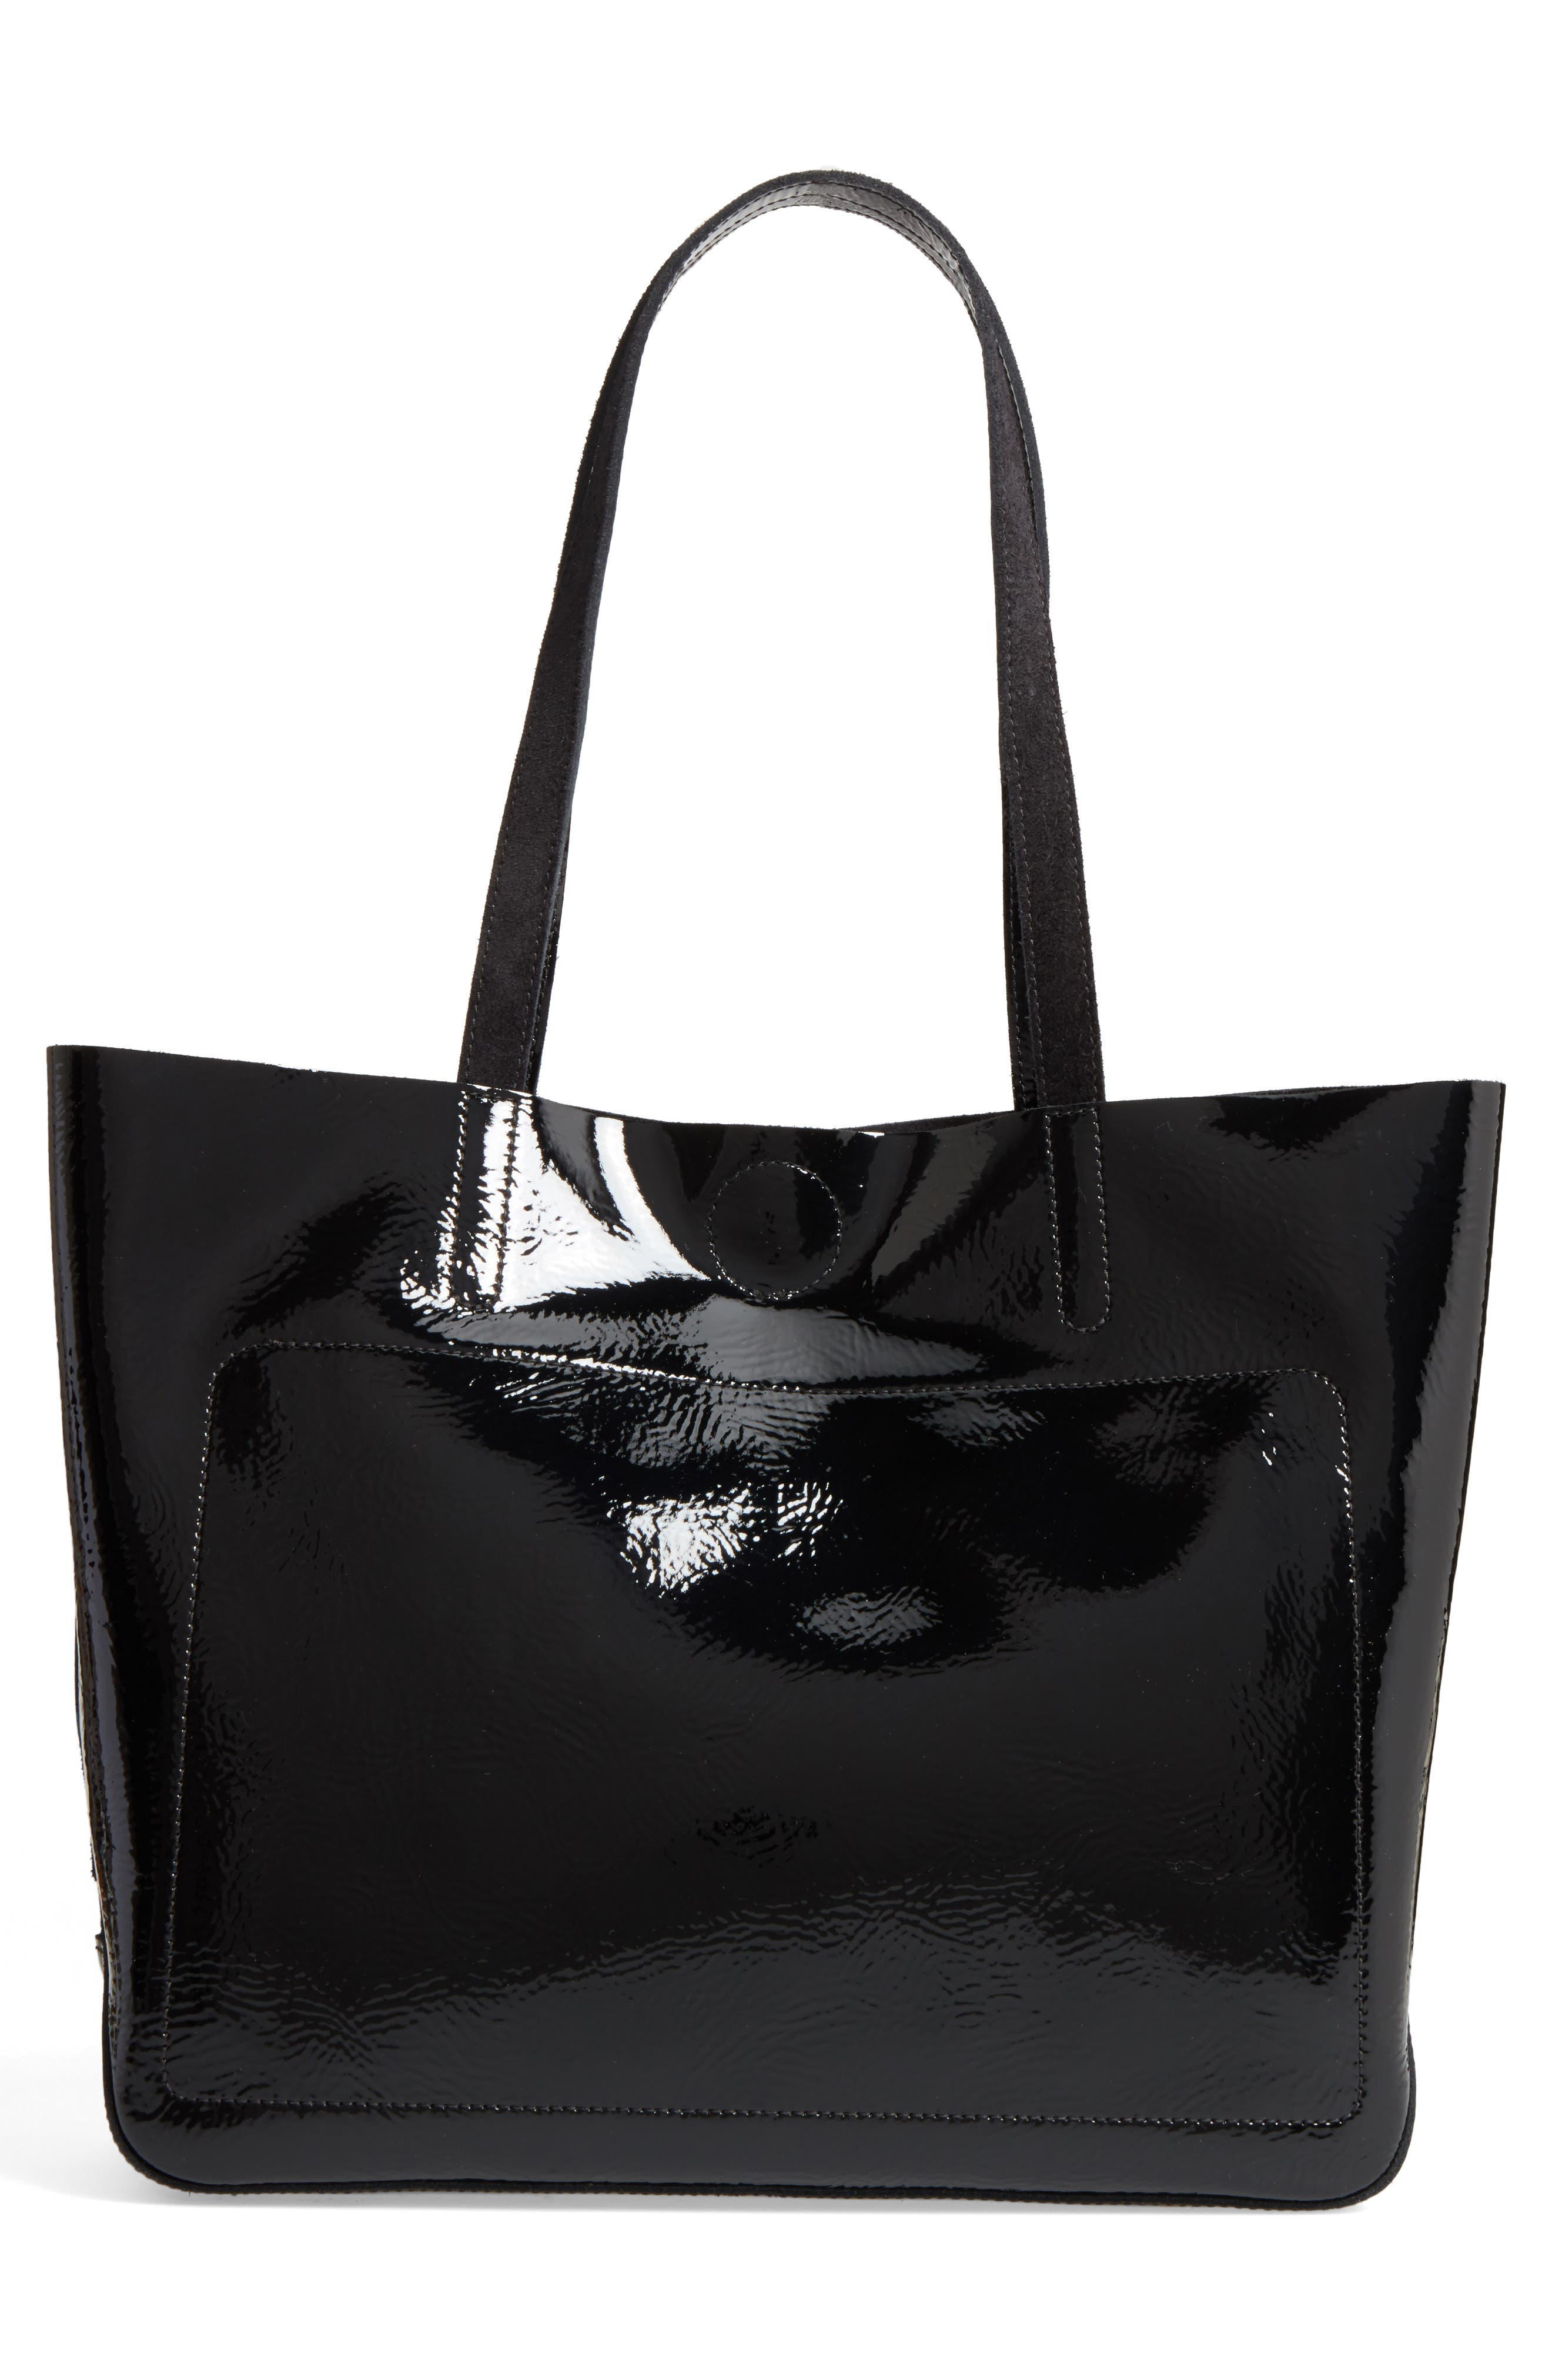 Shop-It Leather Tote,                             Alternate thumbnail 2, color,                             Black